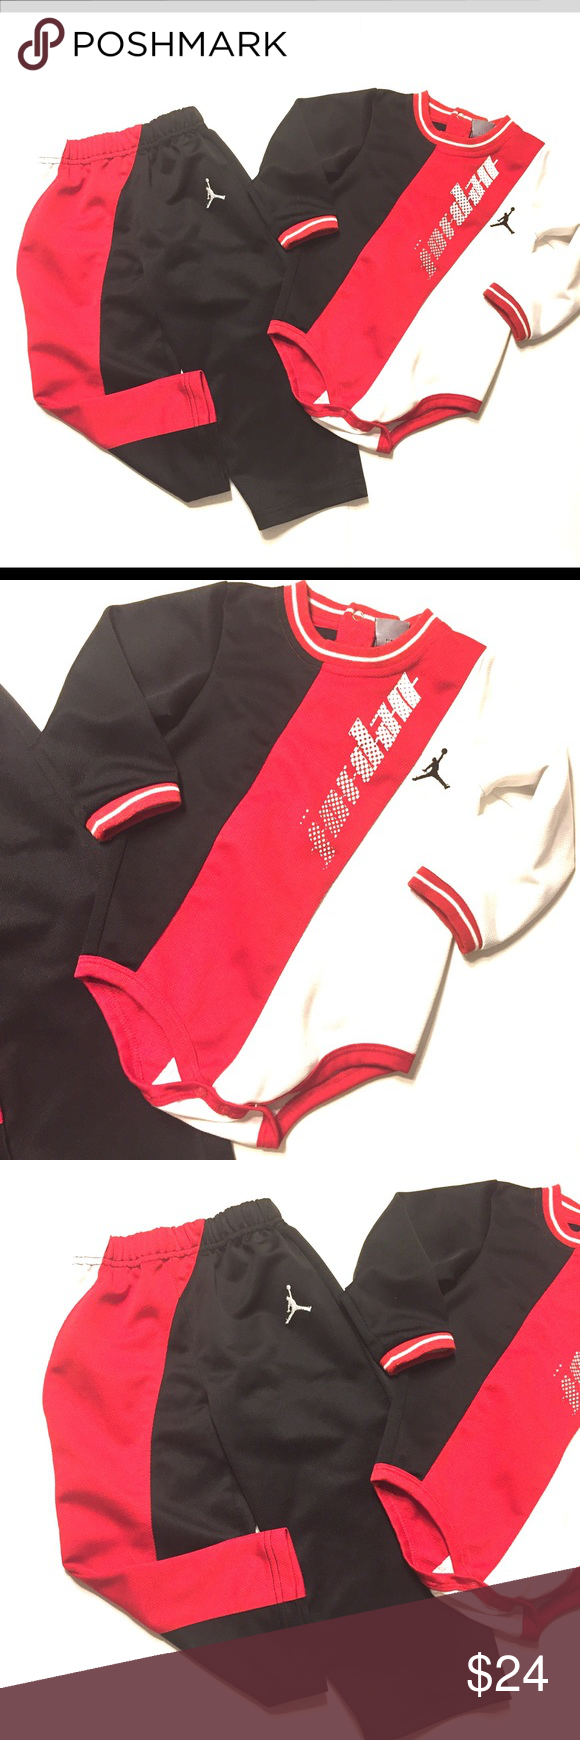 74eb15365fbe9e ••Jordan•• Two piece outfit Michael JORDAN two piece outfit. Size 24 months  in excellent used condition. Jordan Matching Sets